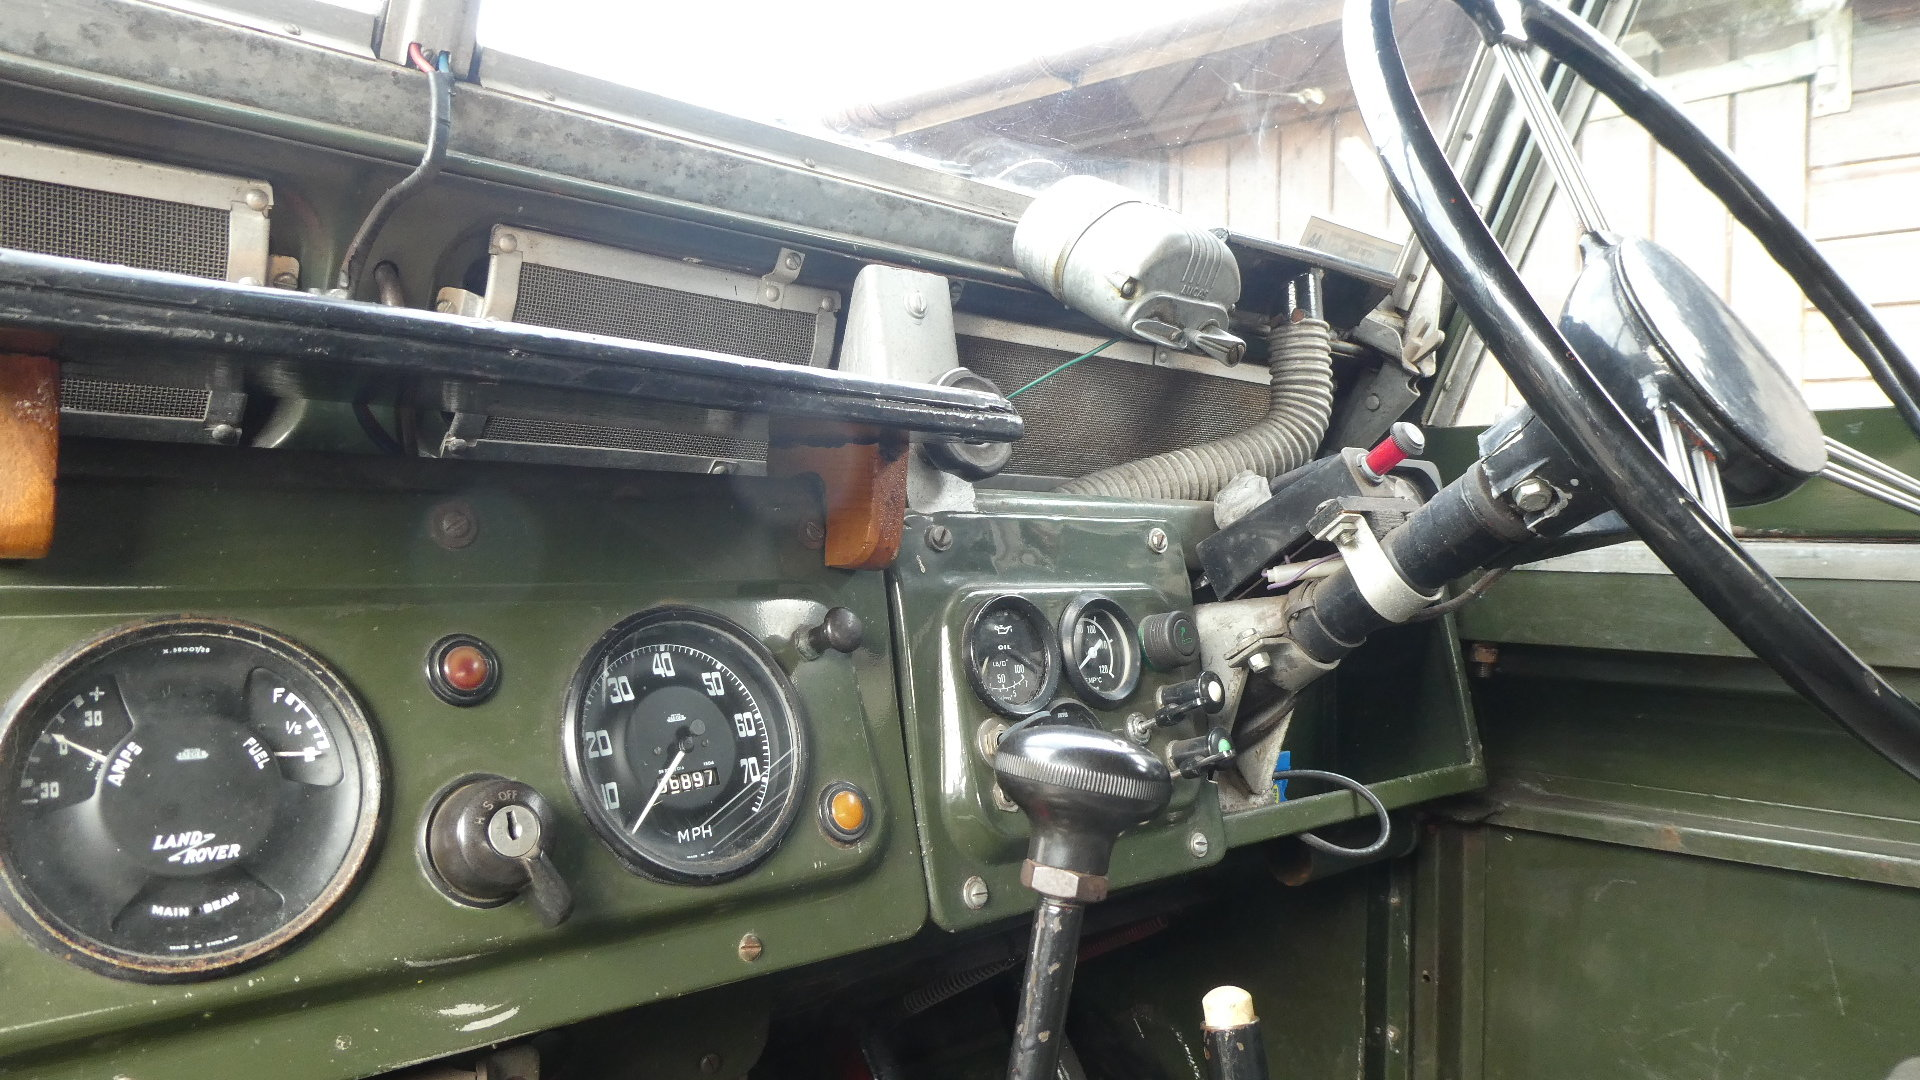 1958 Land Rover Series 2  model 88 For Sale (picture 5 of 6)